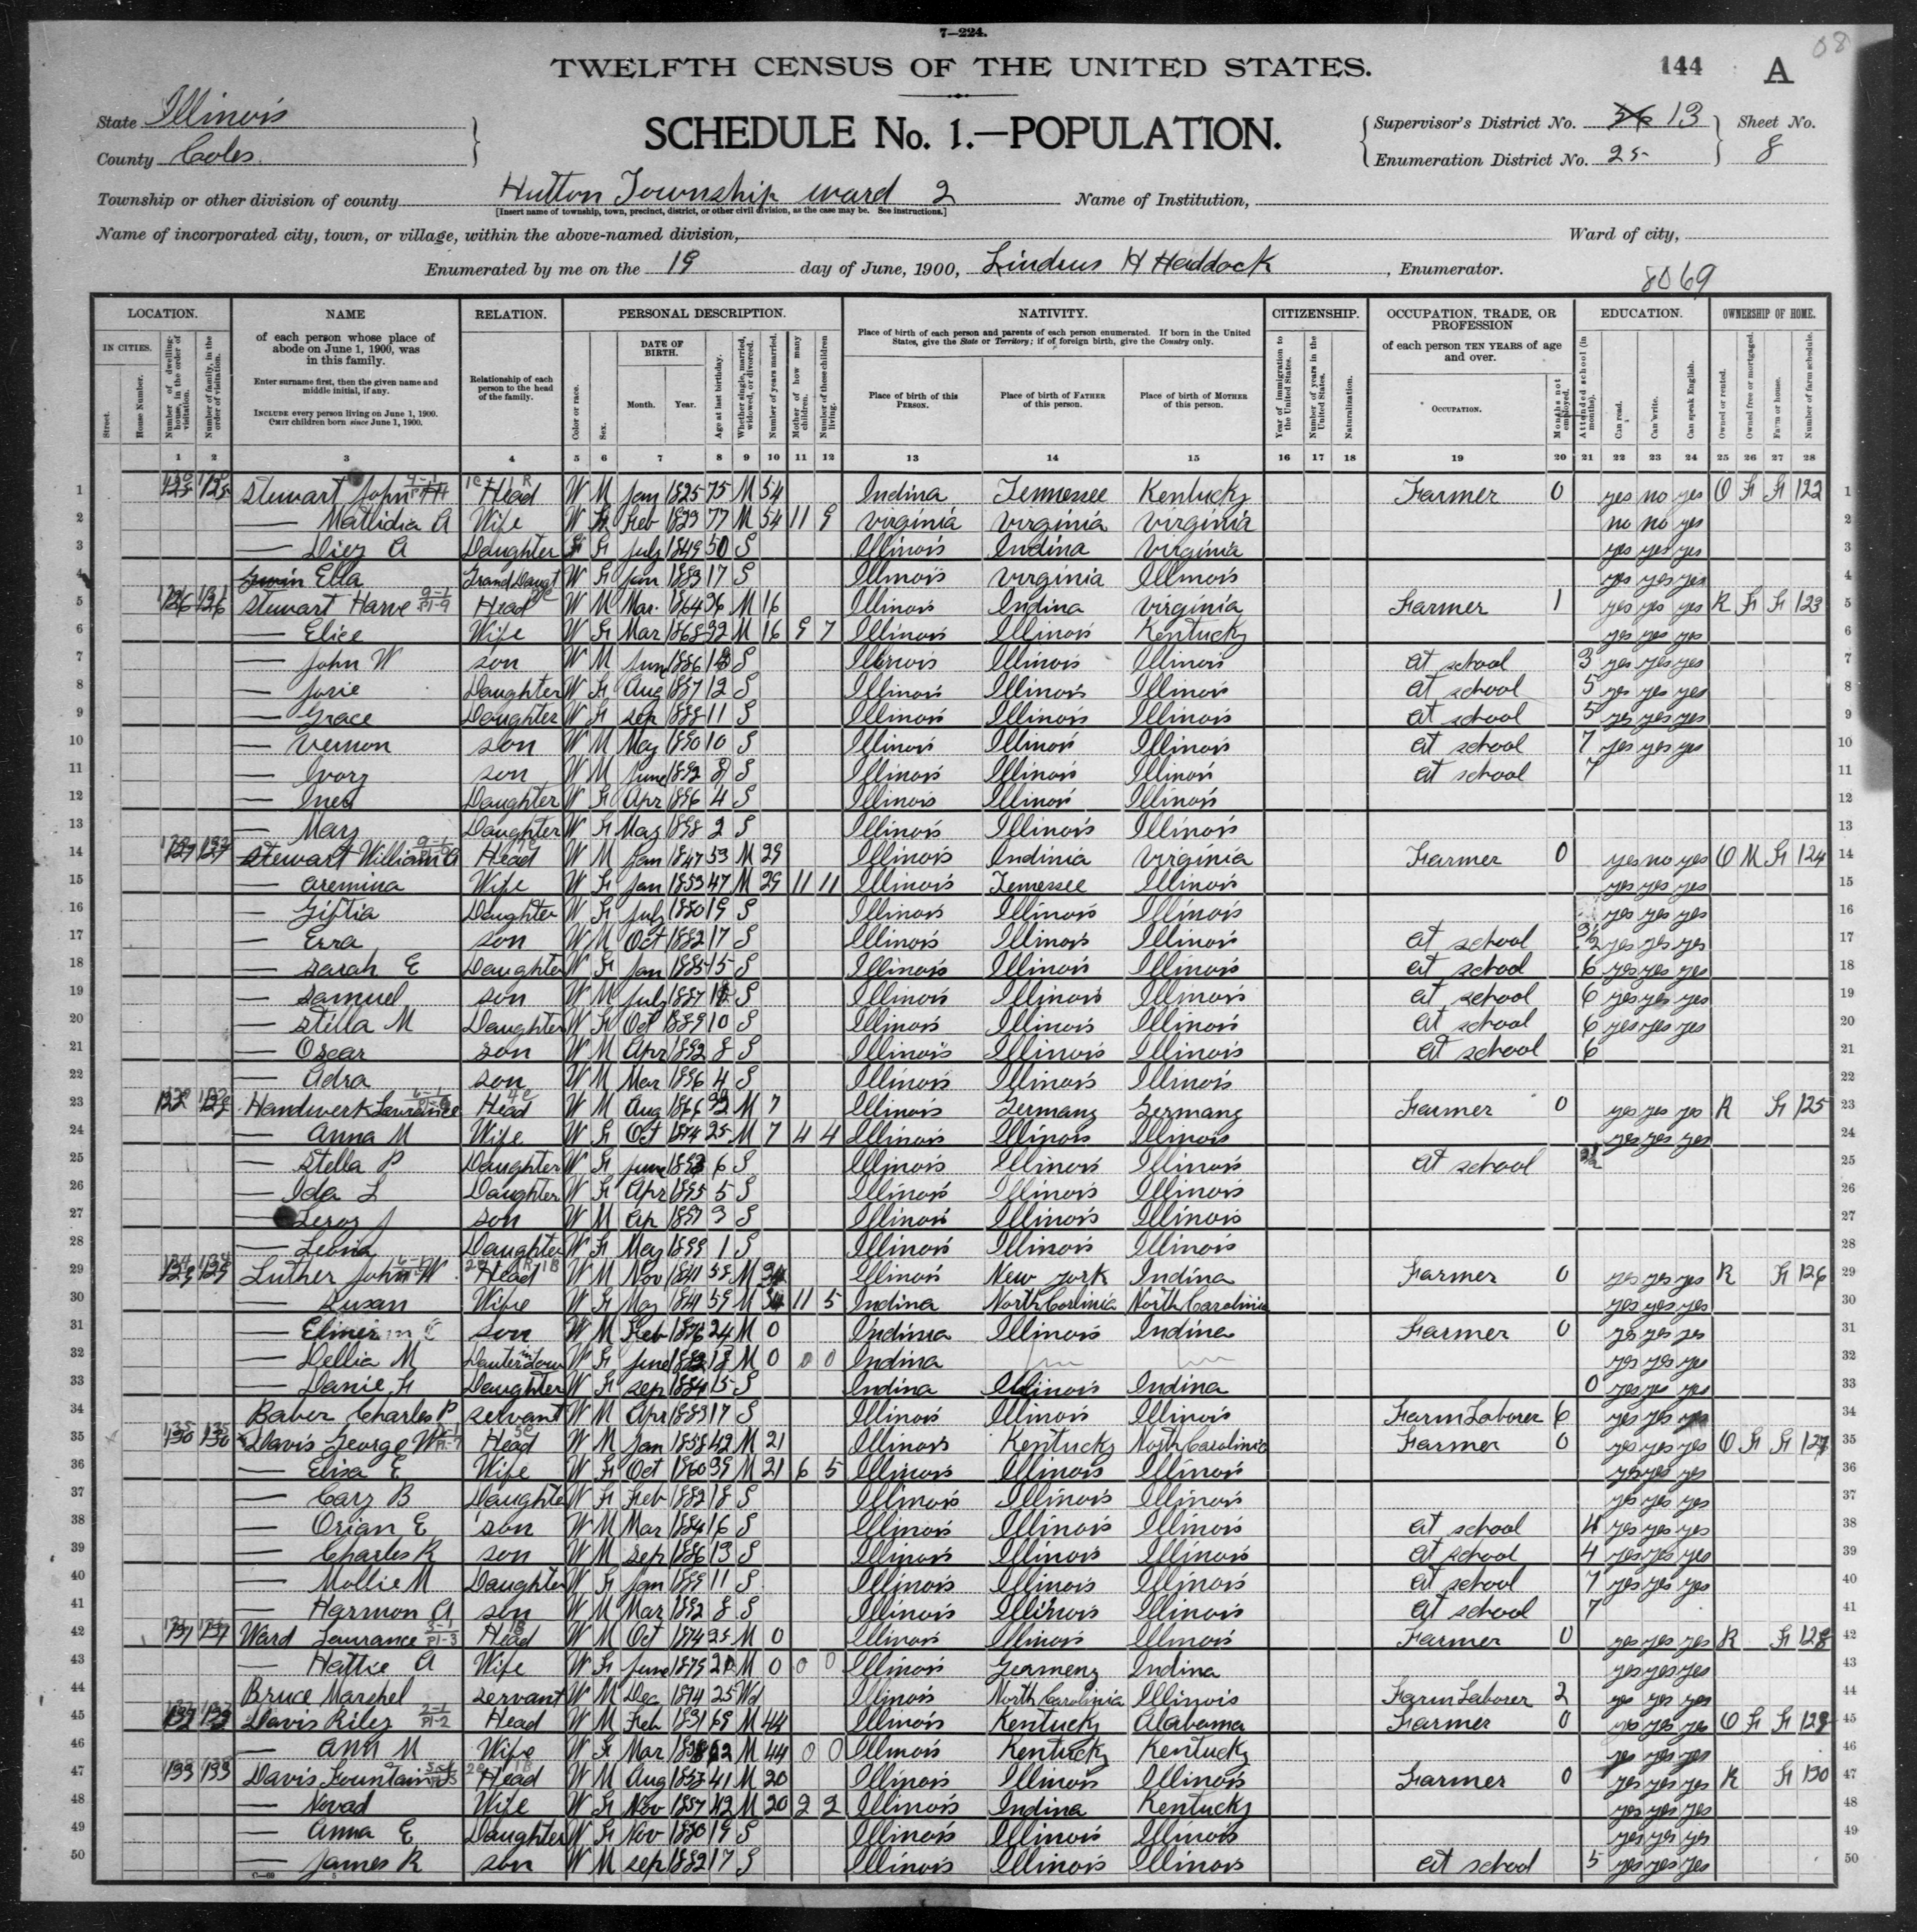 Illinois: COLES County, Enumeration District 25, Sheet No. 8A